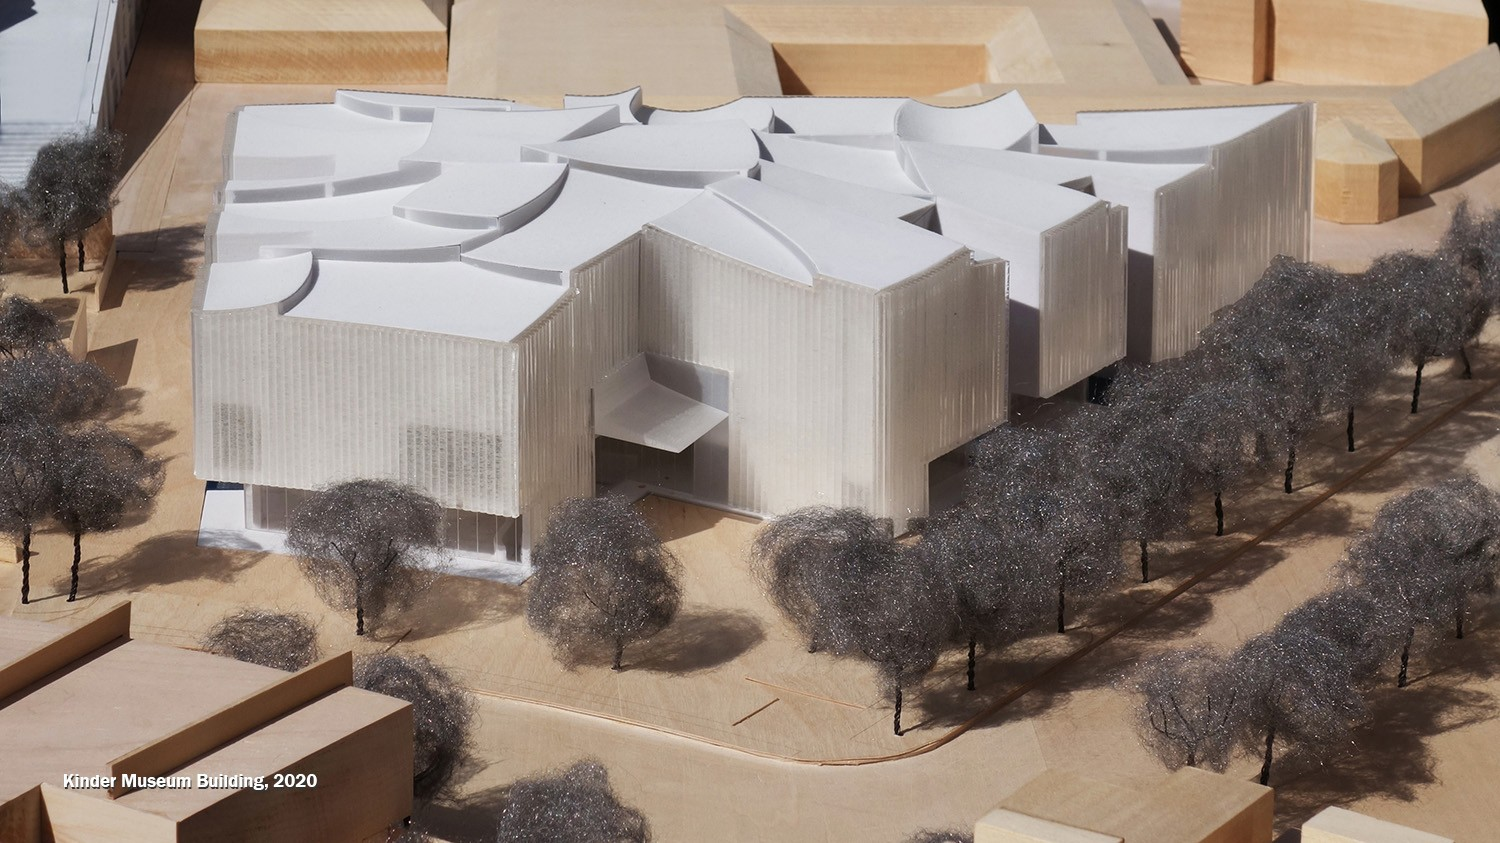 https://s3.us-east-2.amazonaws.com/steven-holl/uploads/projects/project-images/StevenHollArchitects_MFAH_SHA_21_DSC05143-final_WH_.jpg